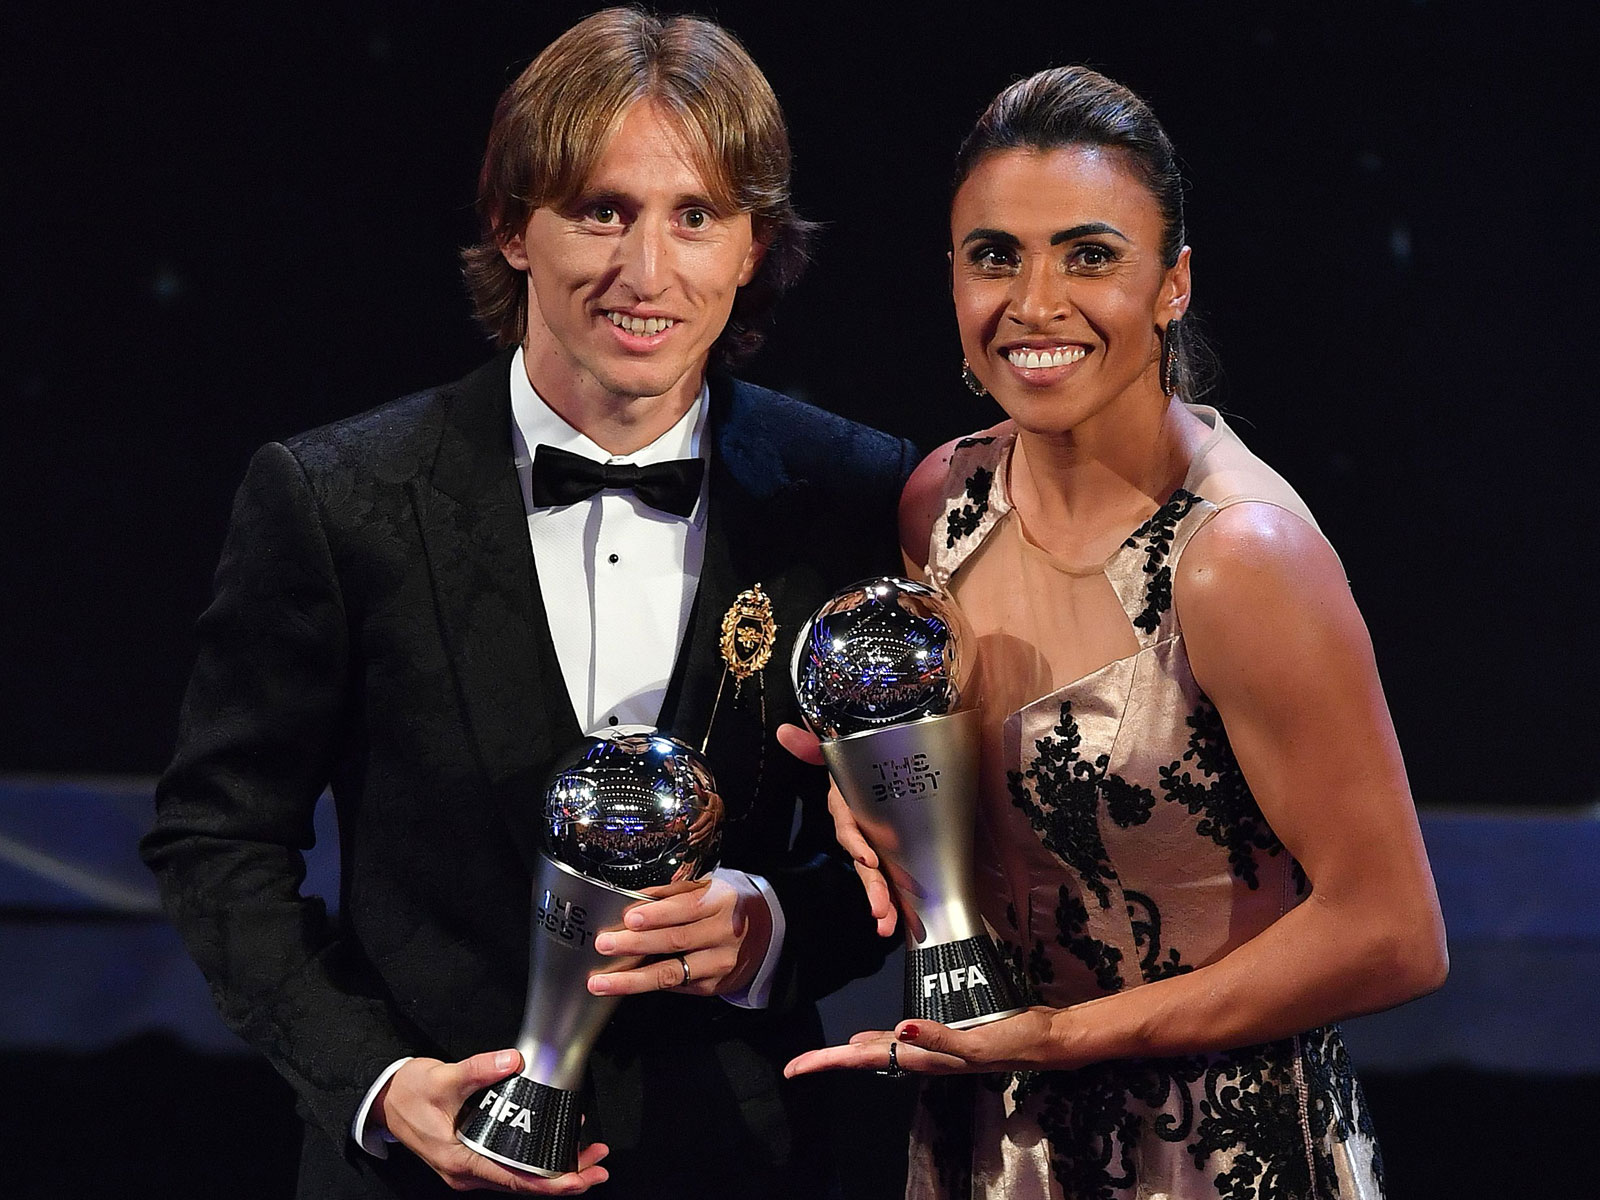 Luka Modric and Marta have won FIFA's Best Player awards